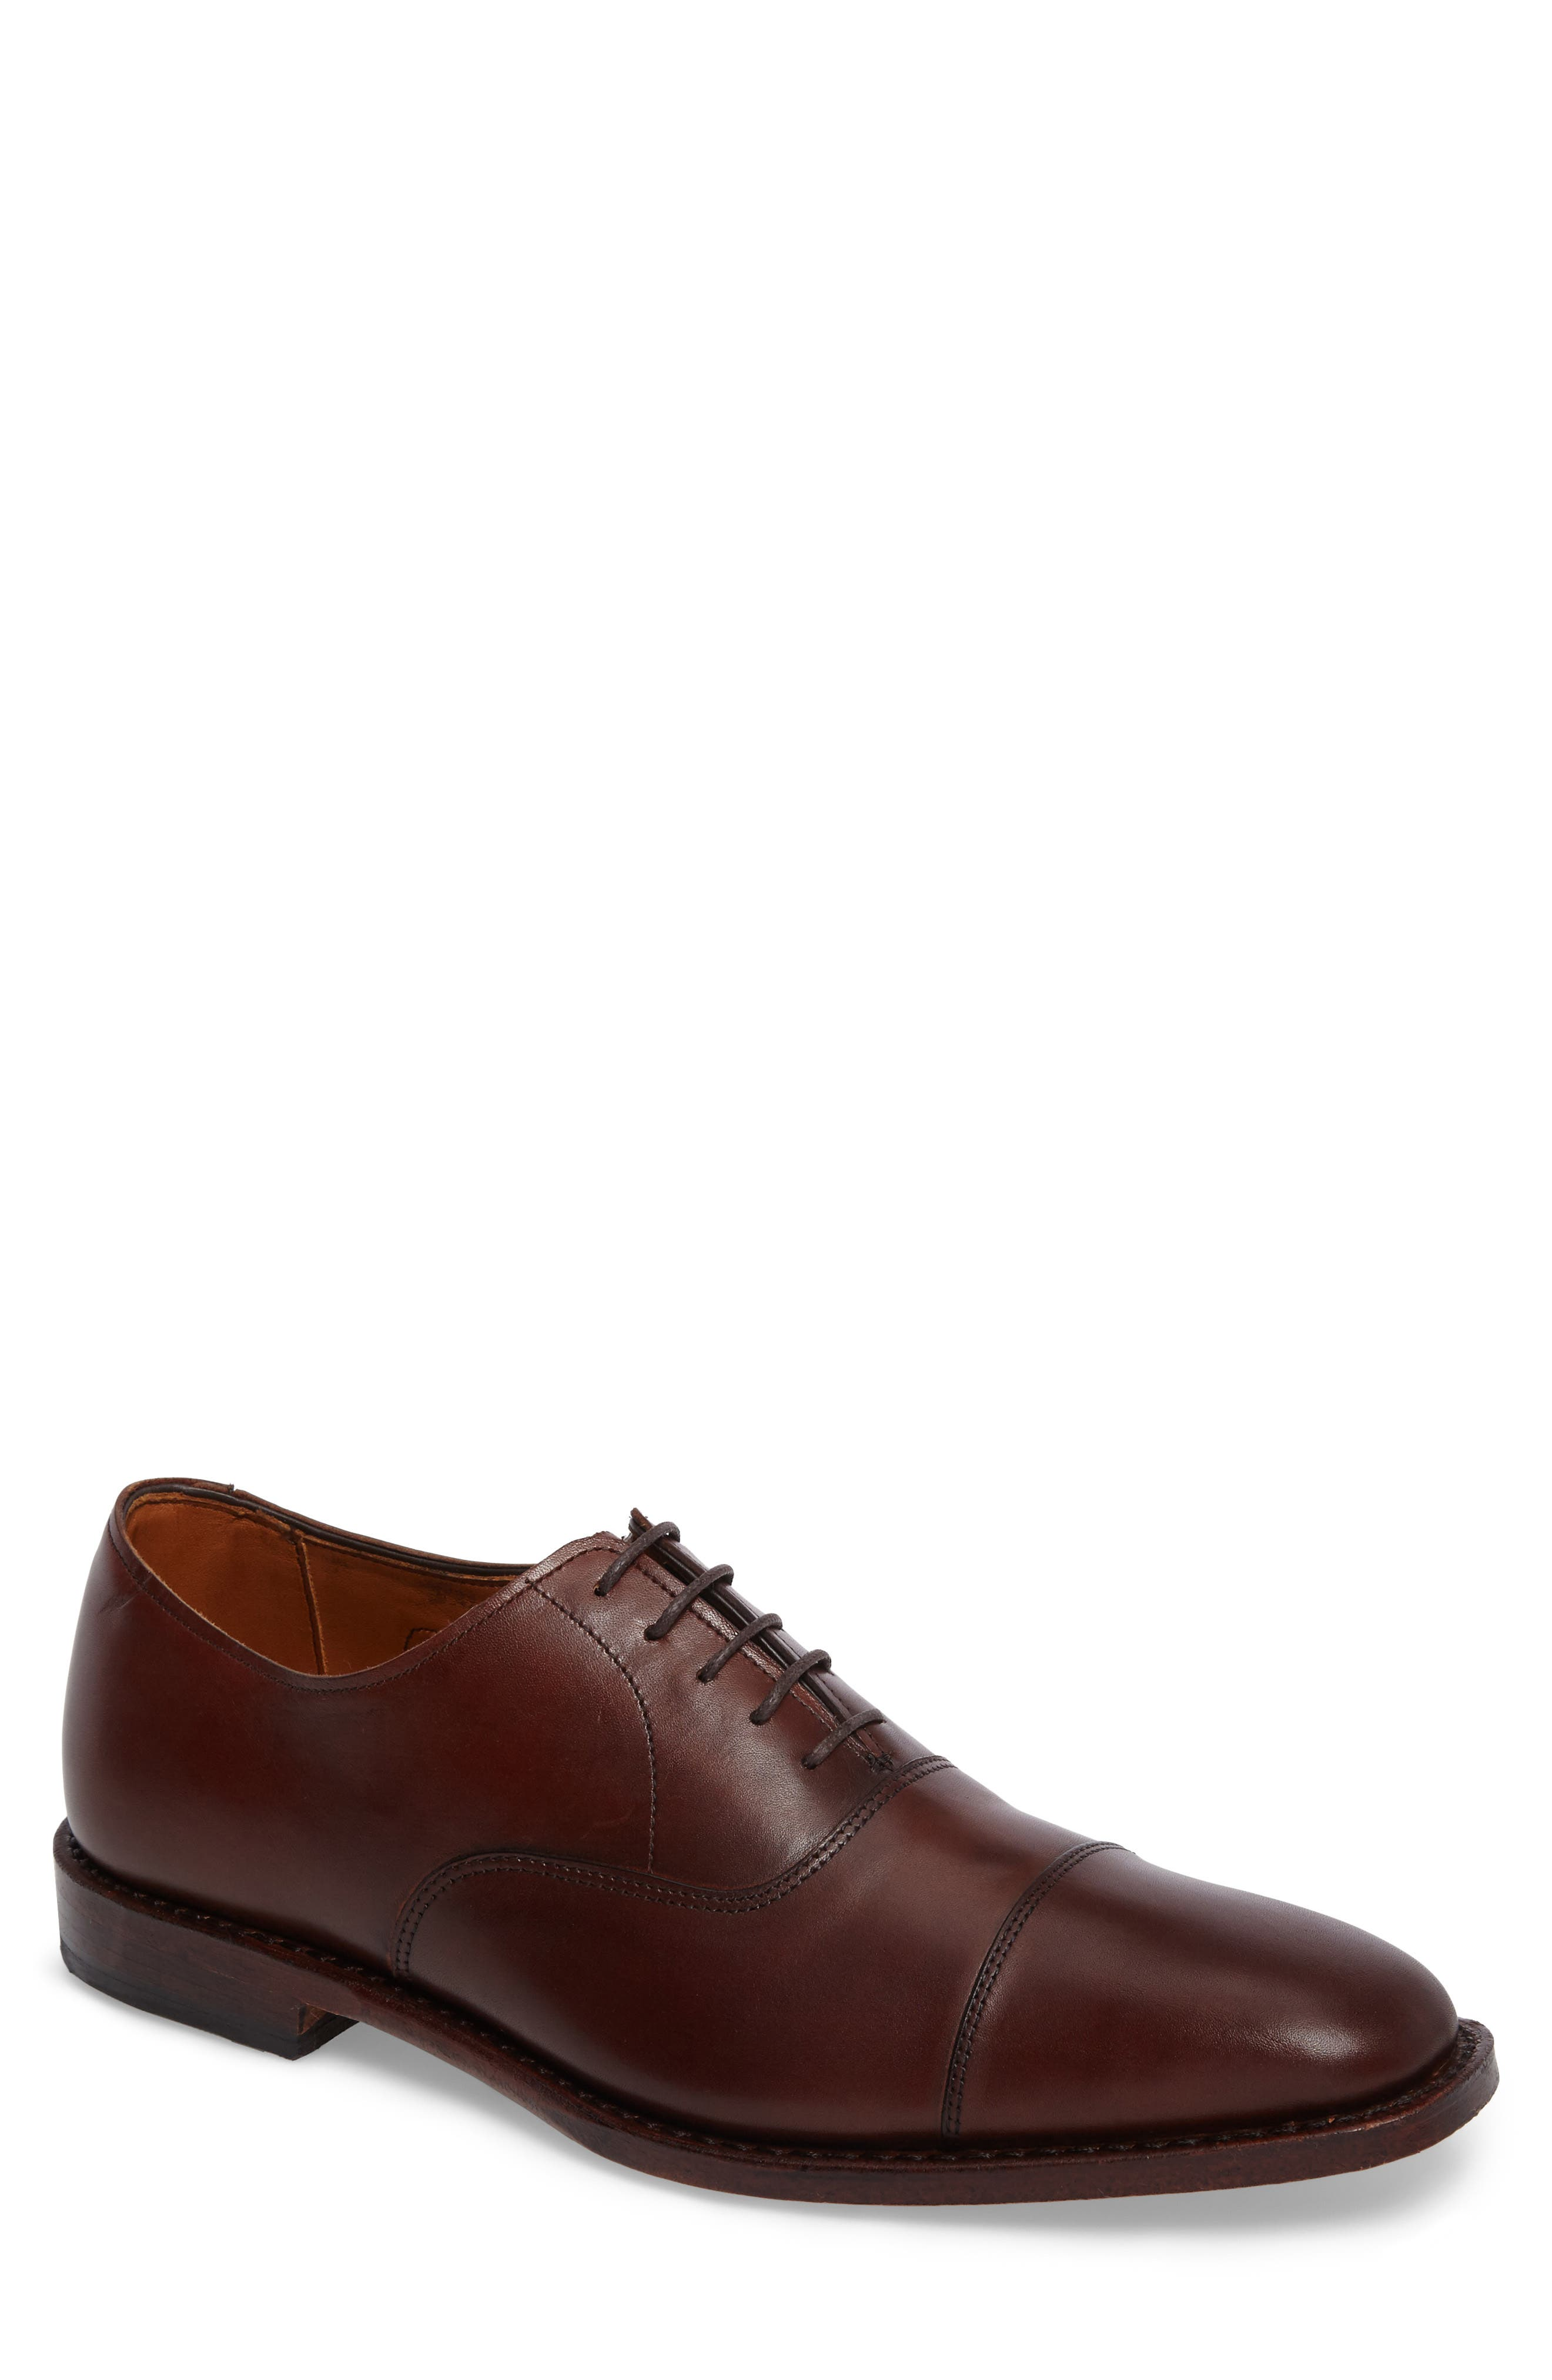 'Exchange Place' Cap Toe Oxford,                             Main thumbnail 1, color,                             Dark Chili Leather